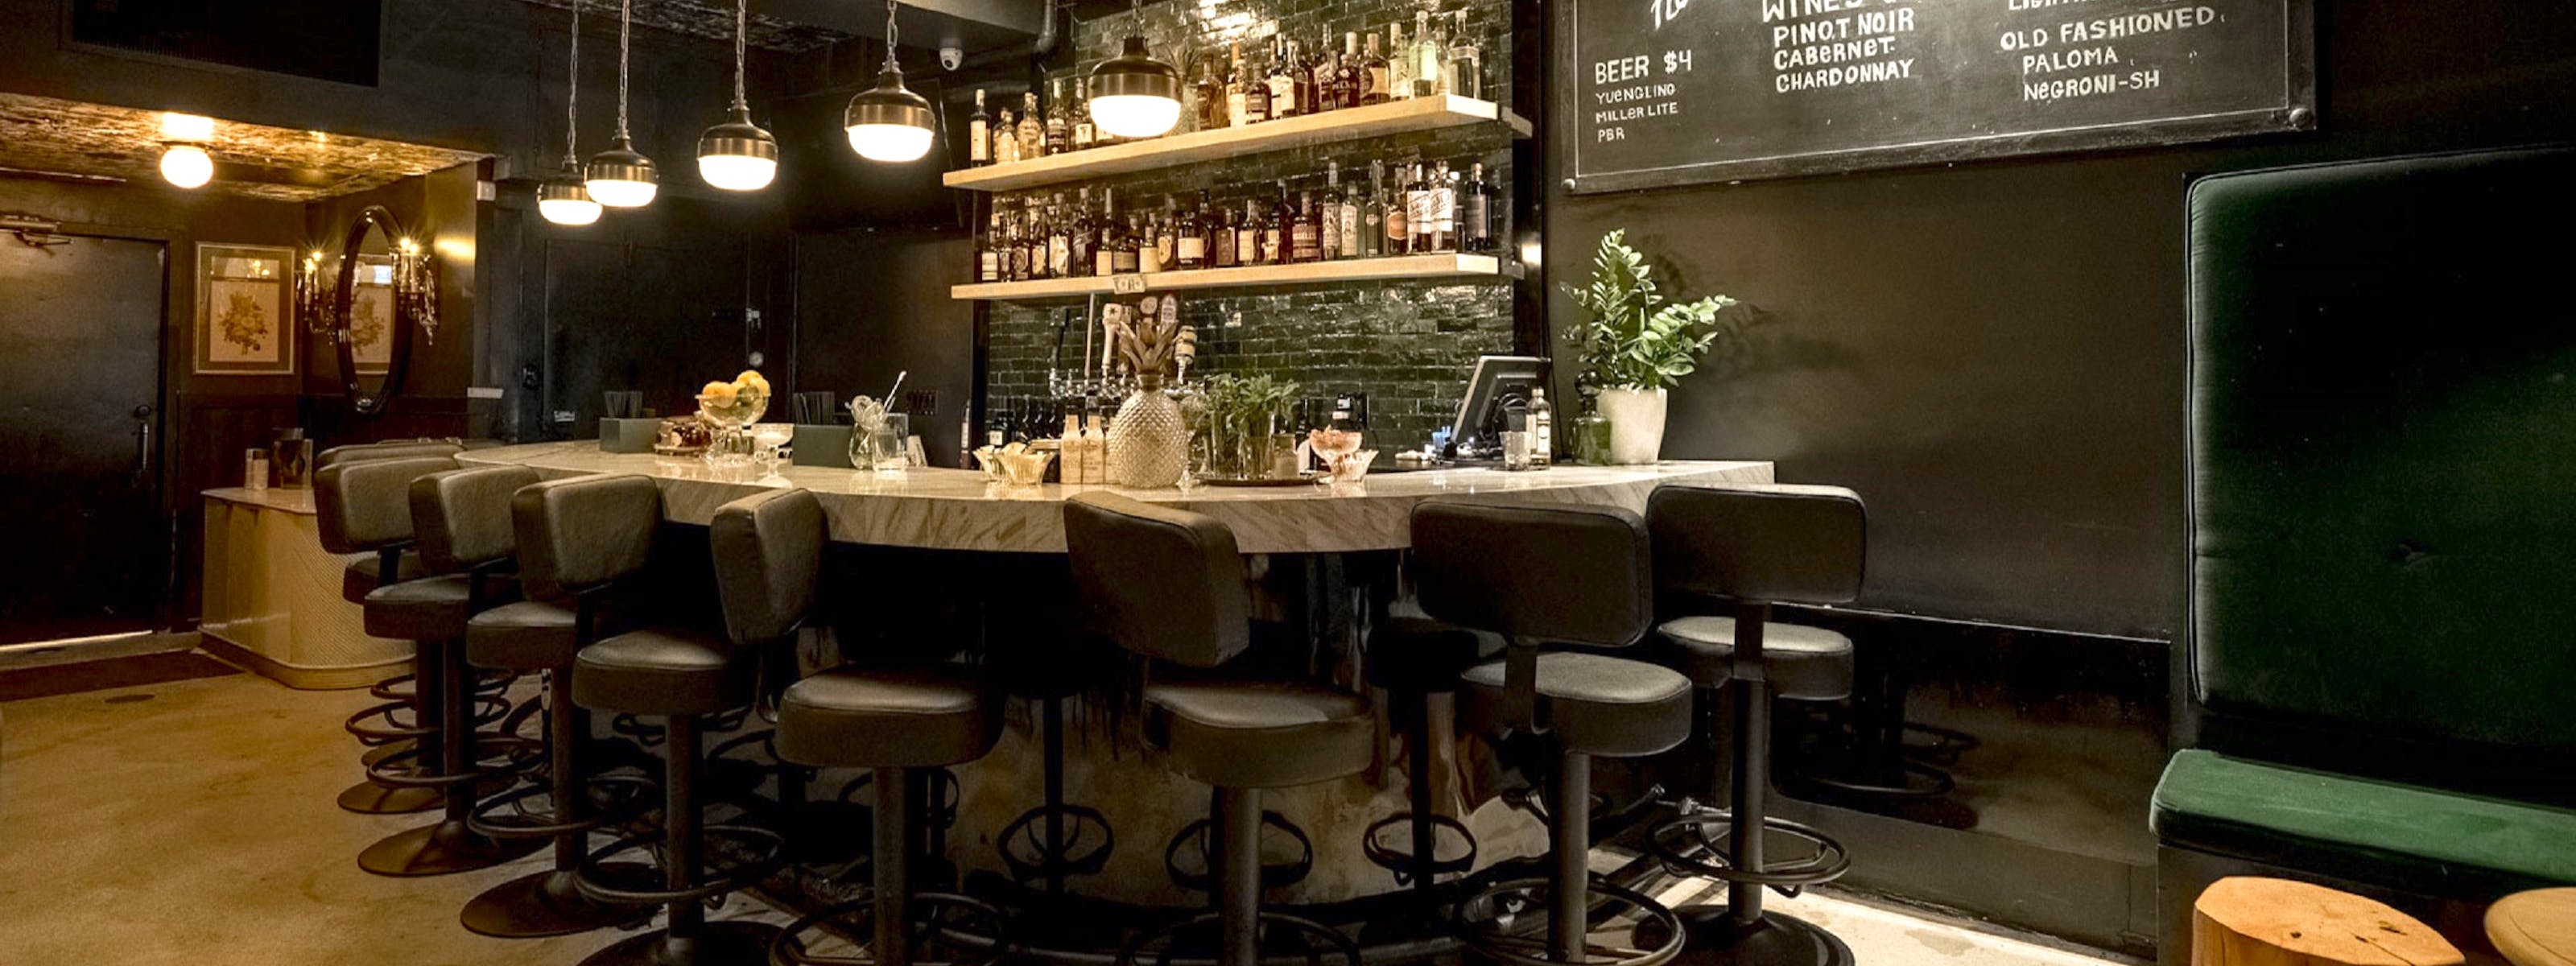 Where To Meet For Drinks Before Dinner - Miami - The Infatuation